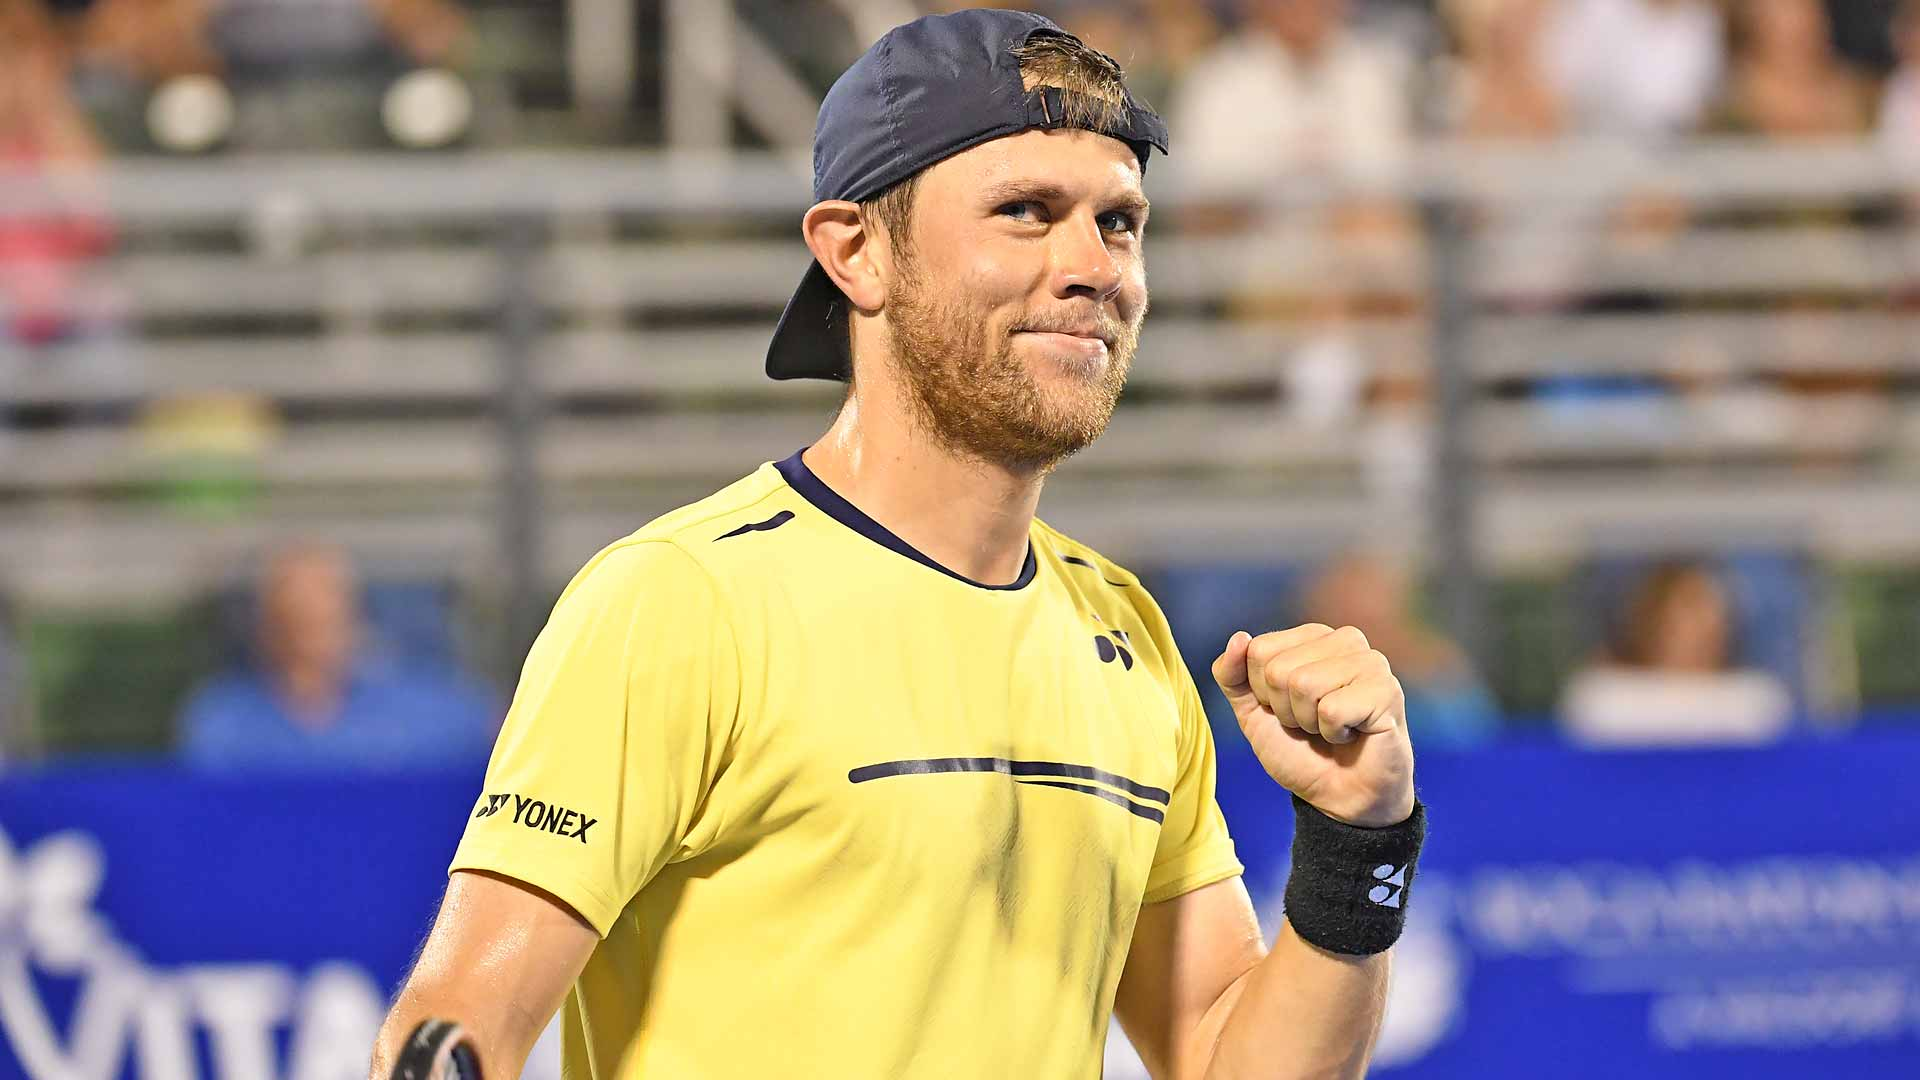 <a href='https://www.atptour.com/en/players/radu-albot/a829/overview'>Radu Albot</a> celebrates his victory against <a href='https://www.atptour.com/en/players/mackenzie-mcdonald/mk66/overview'>Mackenzie McDonald</a> in the Delray Beach semi-finals.